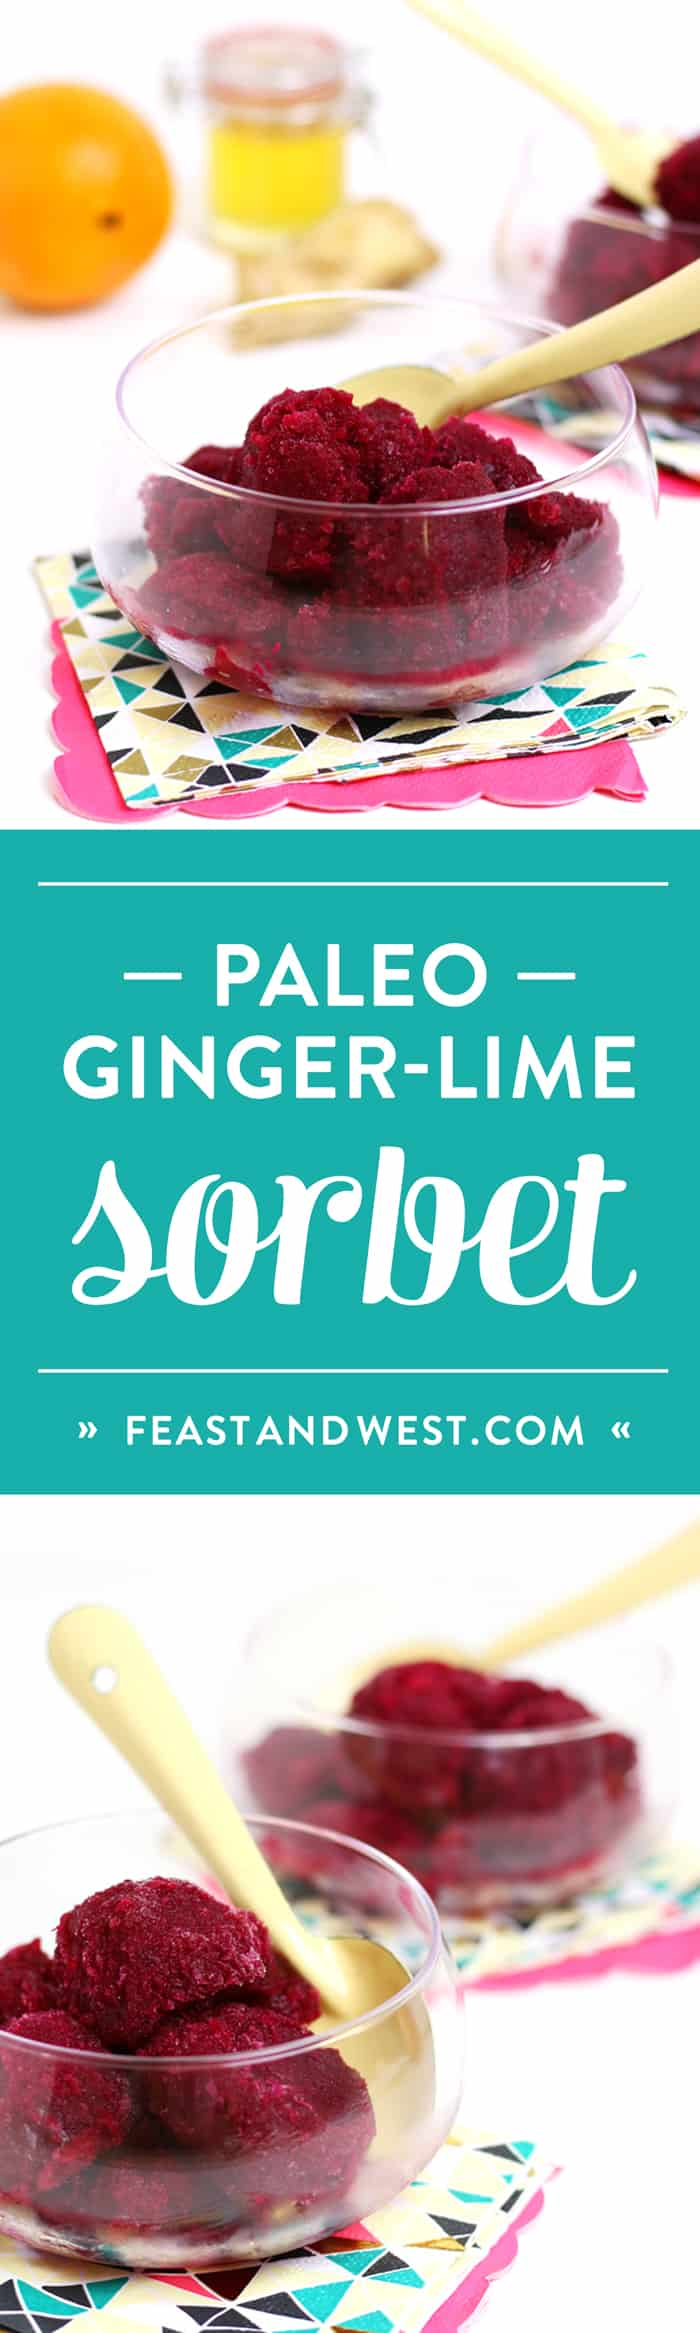 Paleo Ginger-Beet Sorbet — with hints of spicy ginger and zesty orange — is the dairy-free, Paleo-friendly dessert of your dreams. (via feastandwest.com)